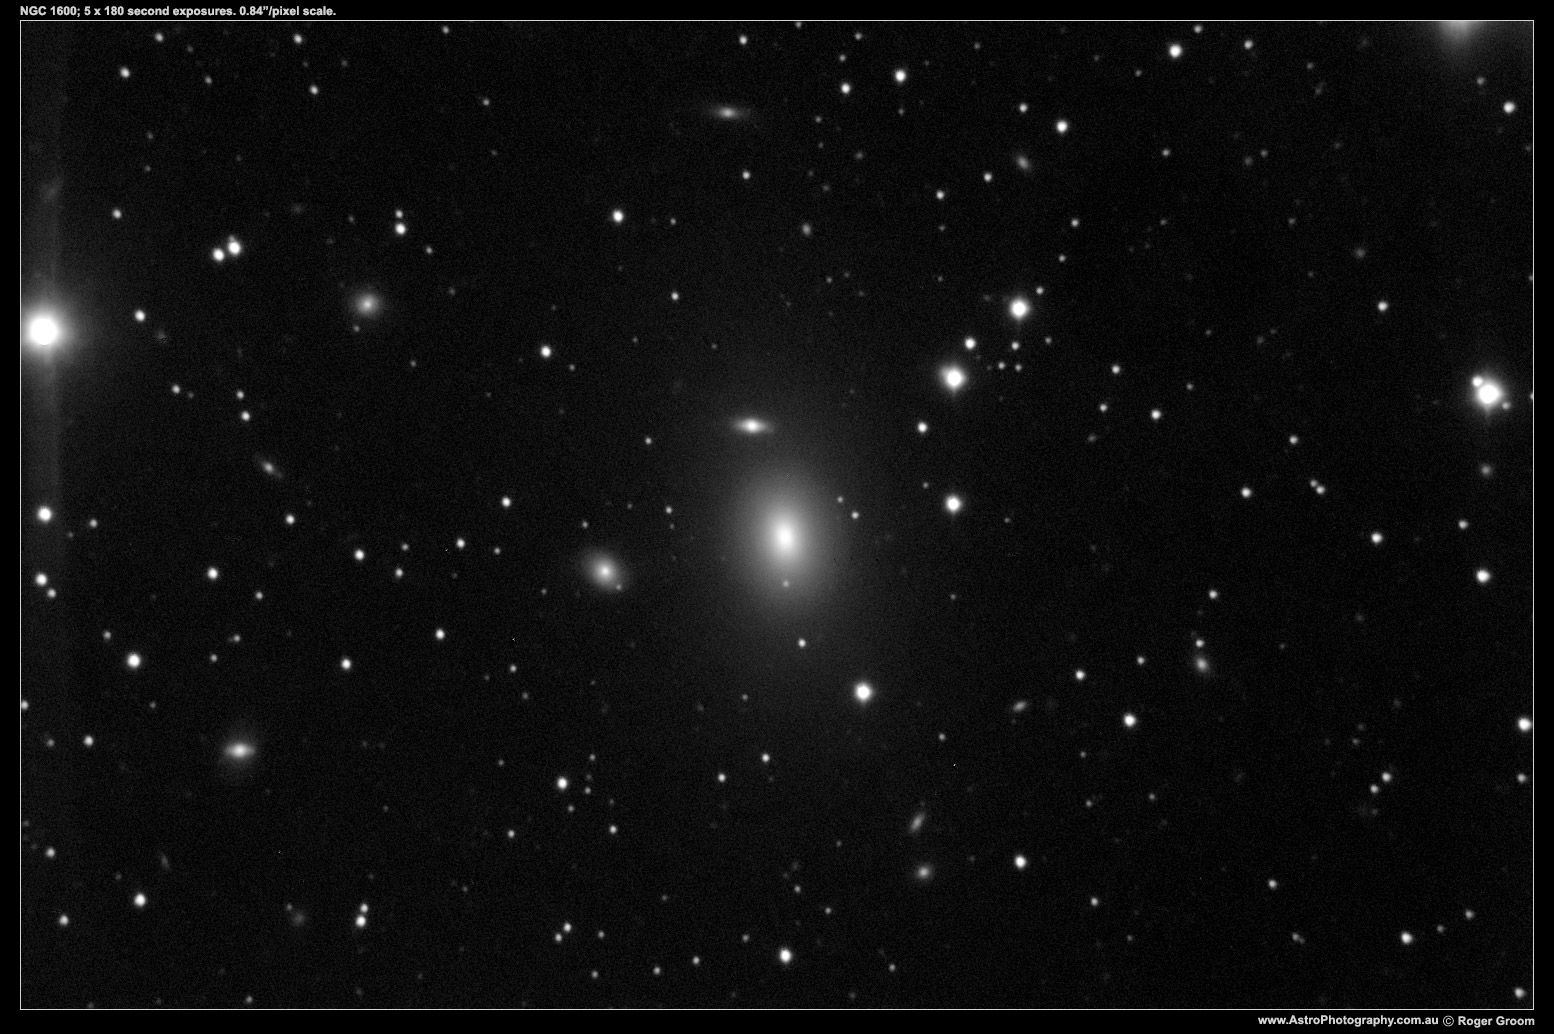 "NGC 1600 and other galaxies. 5 x 180 second exposures. 0.84""/pixel scale."